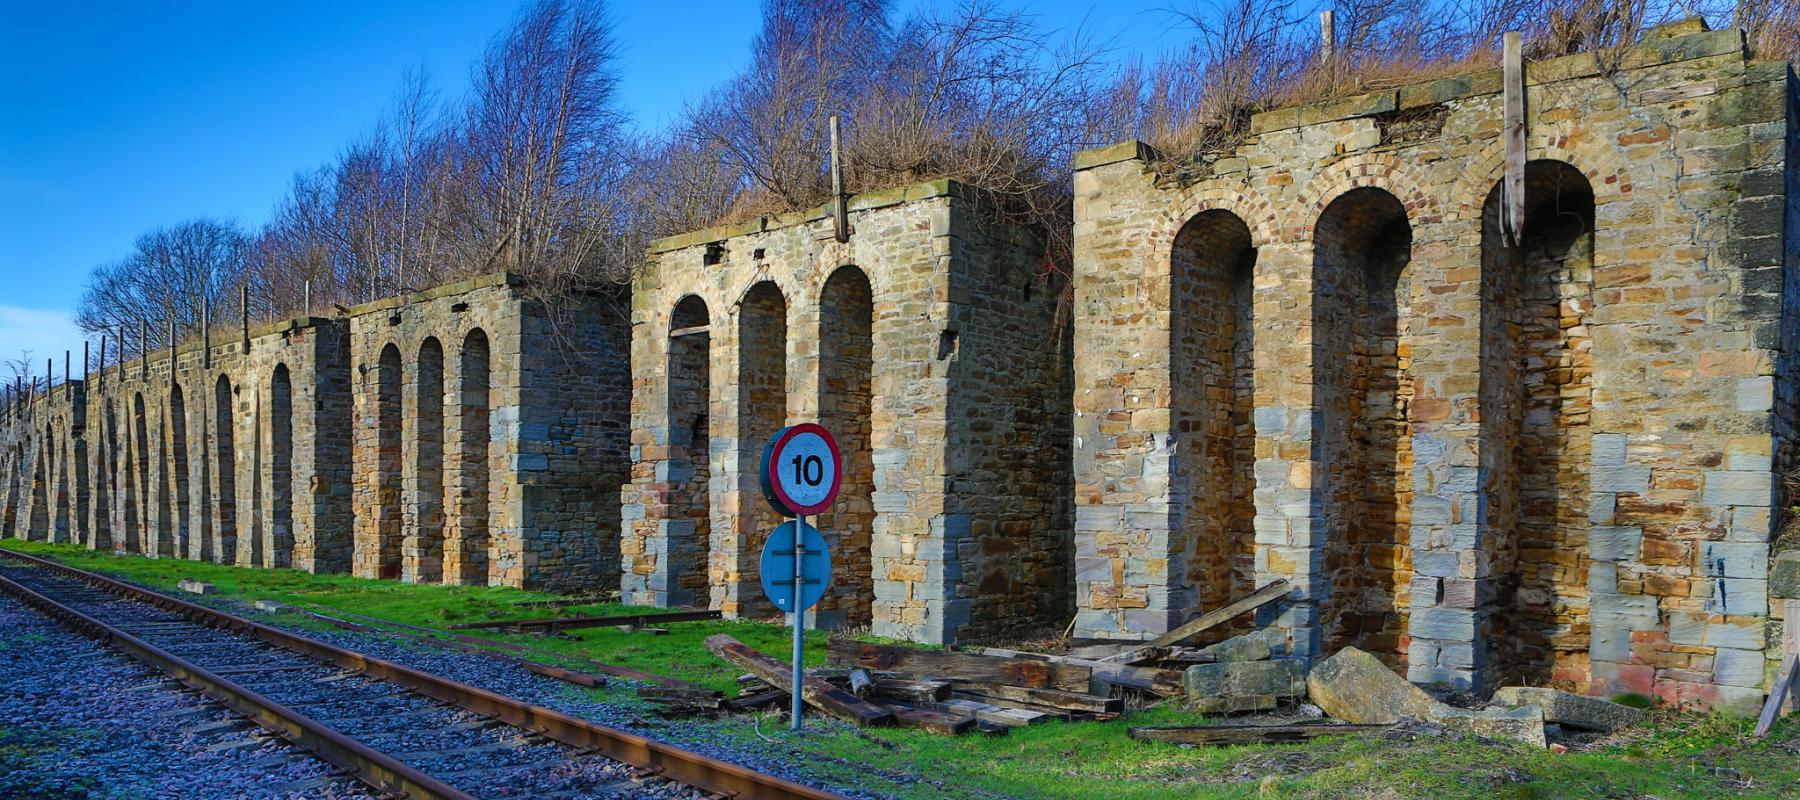 Stonework at the side of railway tracks along the Bishop Line, North East UK